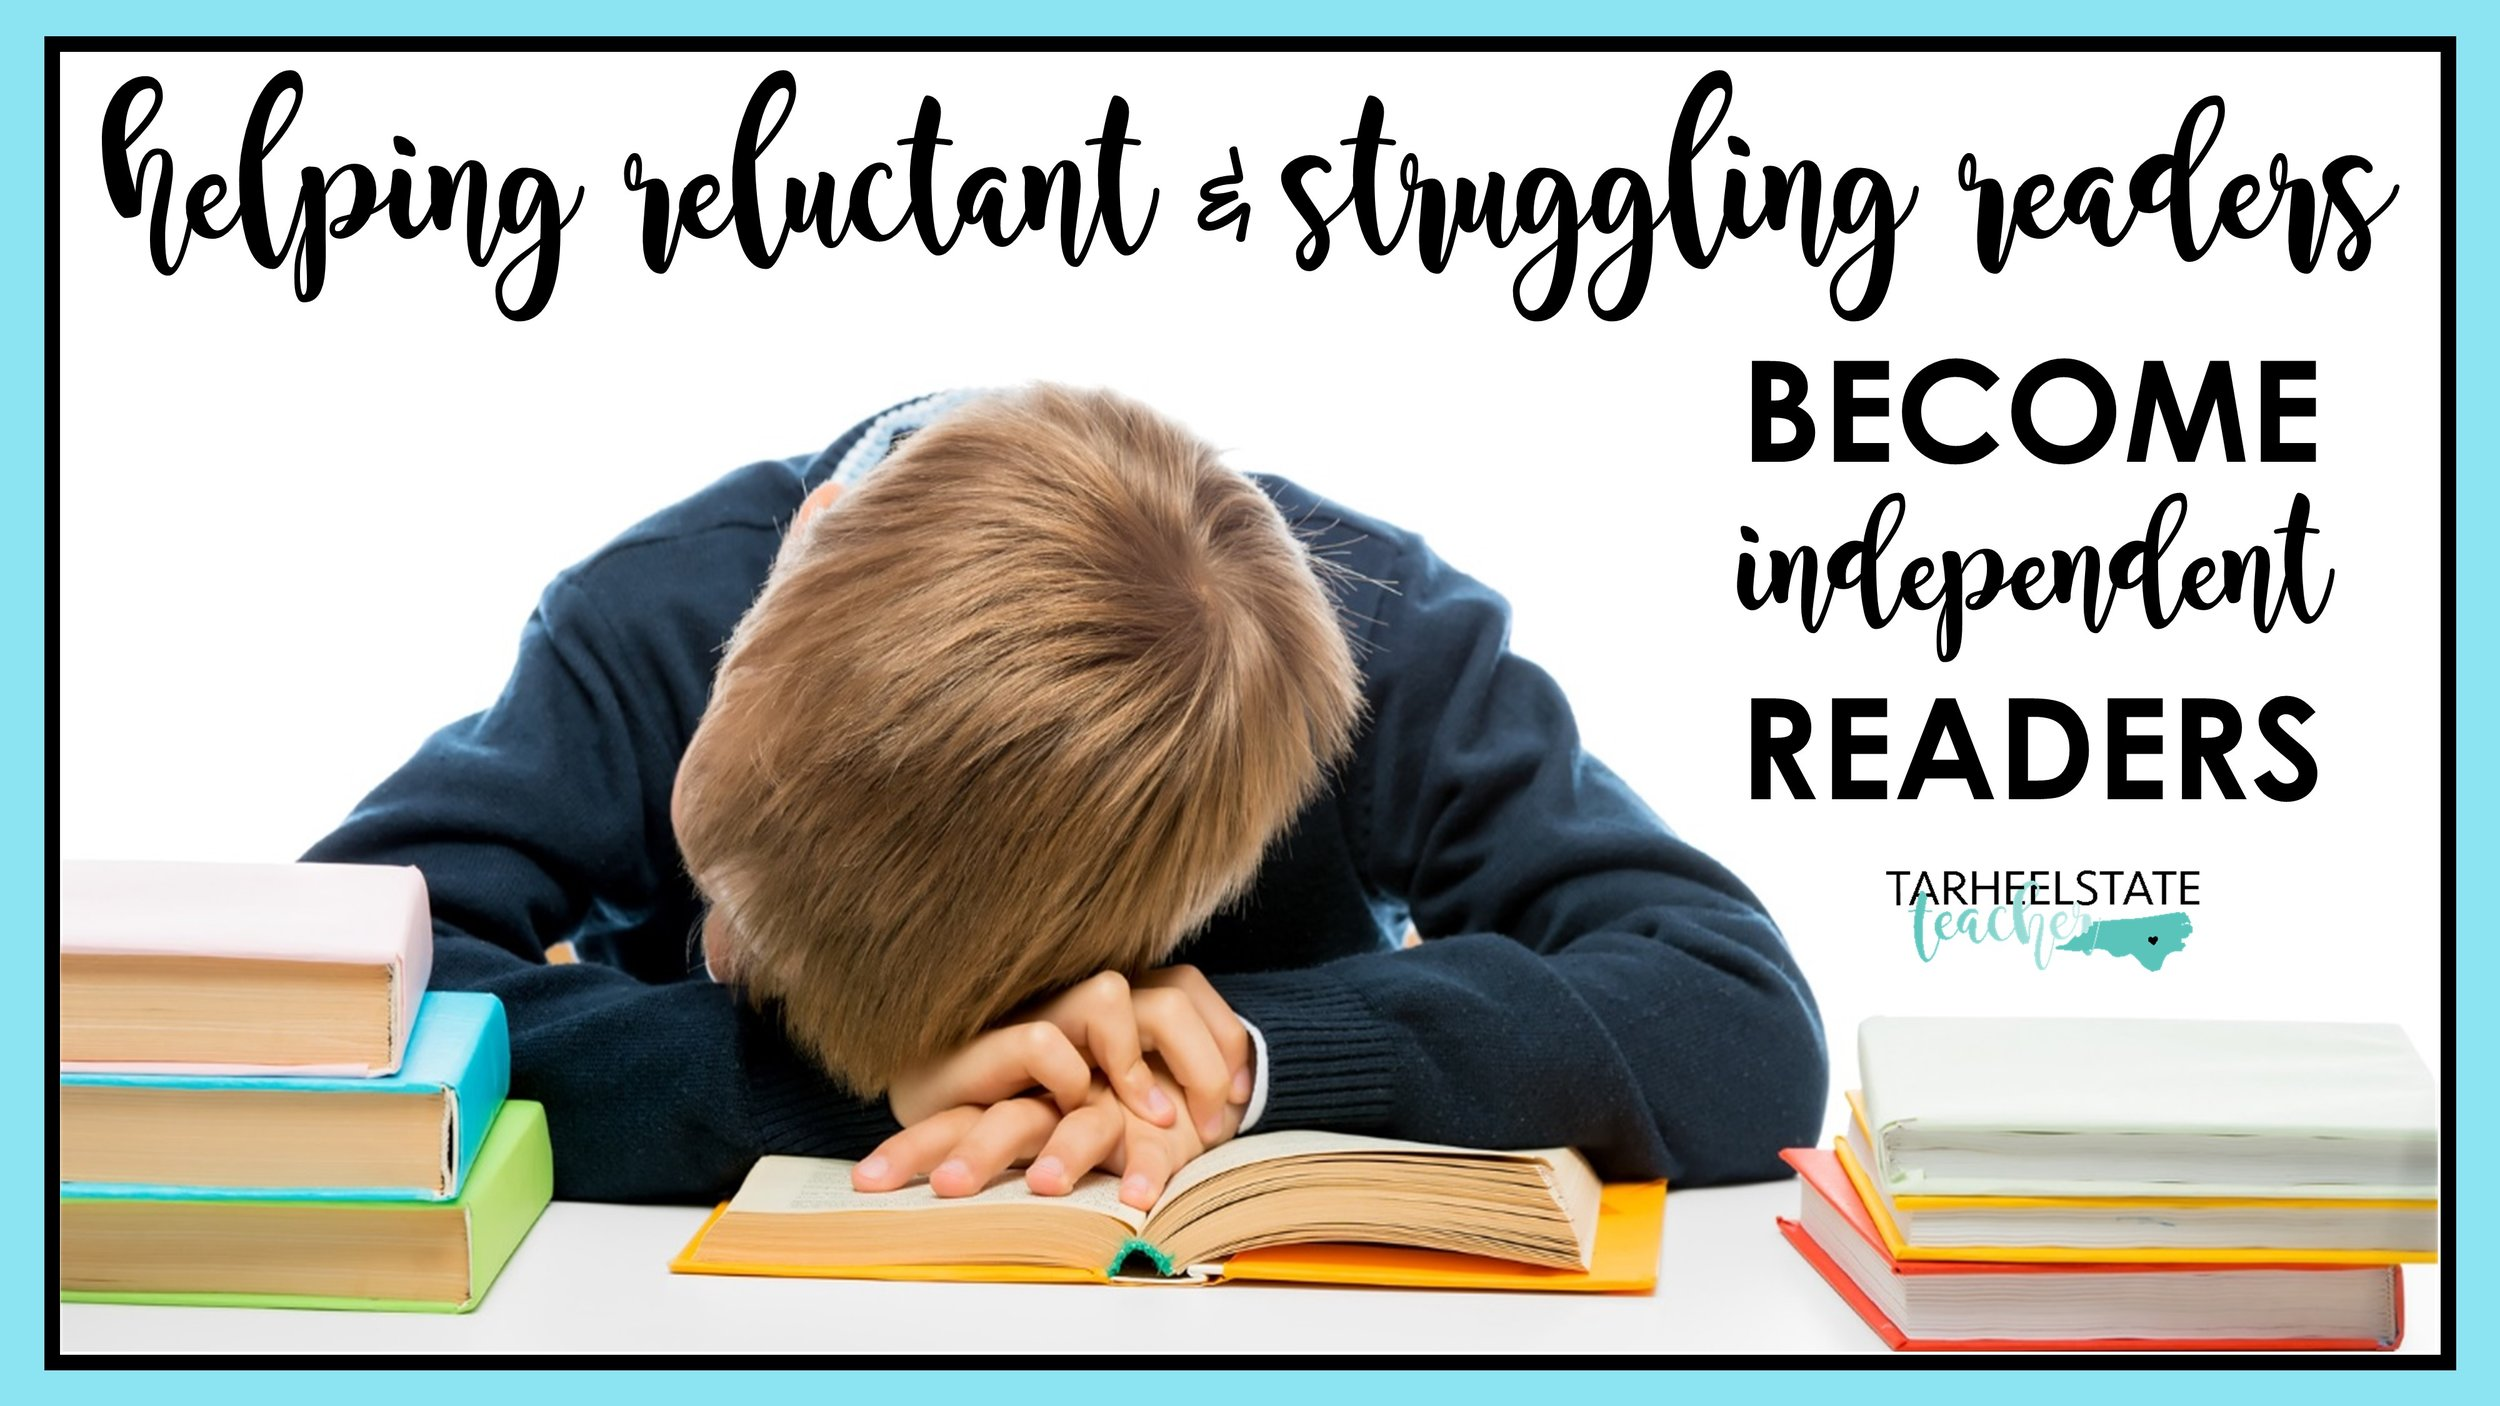 How will you support your reluctant and struggling readers at the beginning of the year? I believe we need to know who our struggling readers are before back to school even starts and that we need to have strategies and ideas ready for helping students build a reading life! (Tips/ideas to be prepared ahead of time for your upper elementary reluctant and struggling readers.) 3rd grade, 4th grade, 5th grade reading ideas #independentreading #4thgrade #5thgrade #readersworkshop #readingworkshop